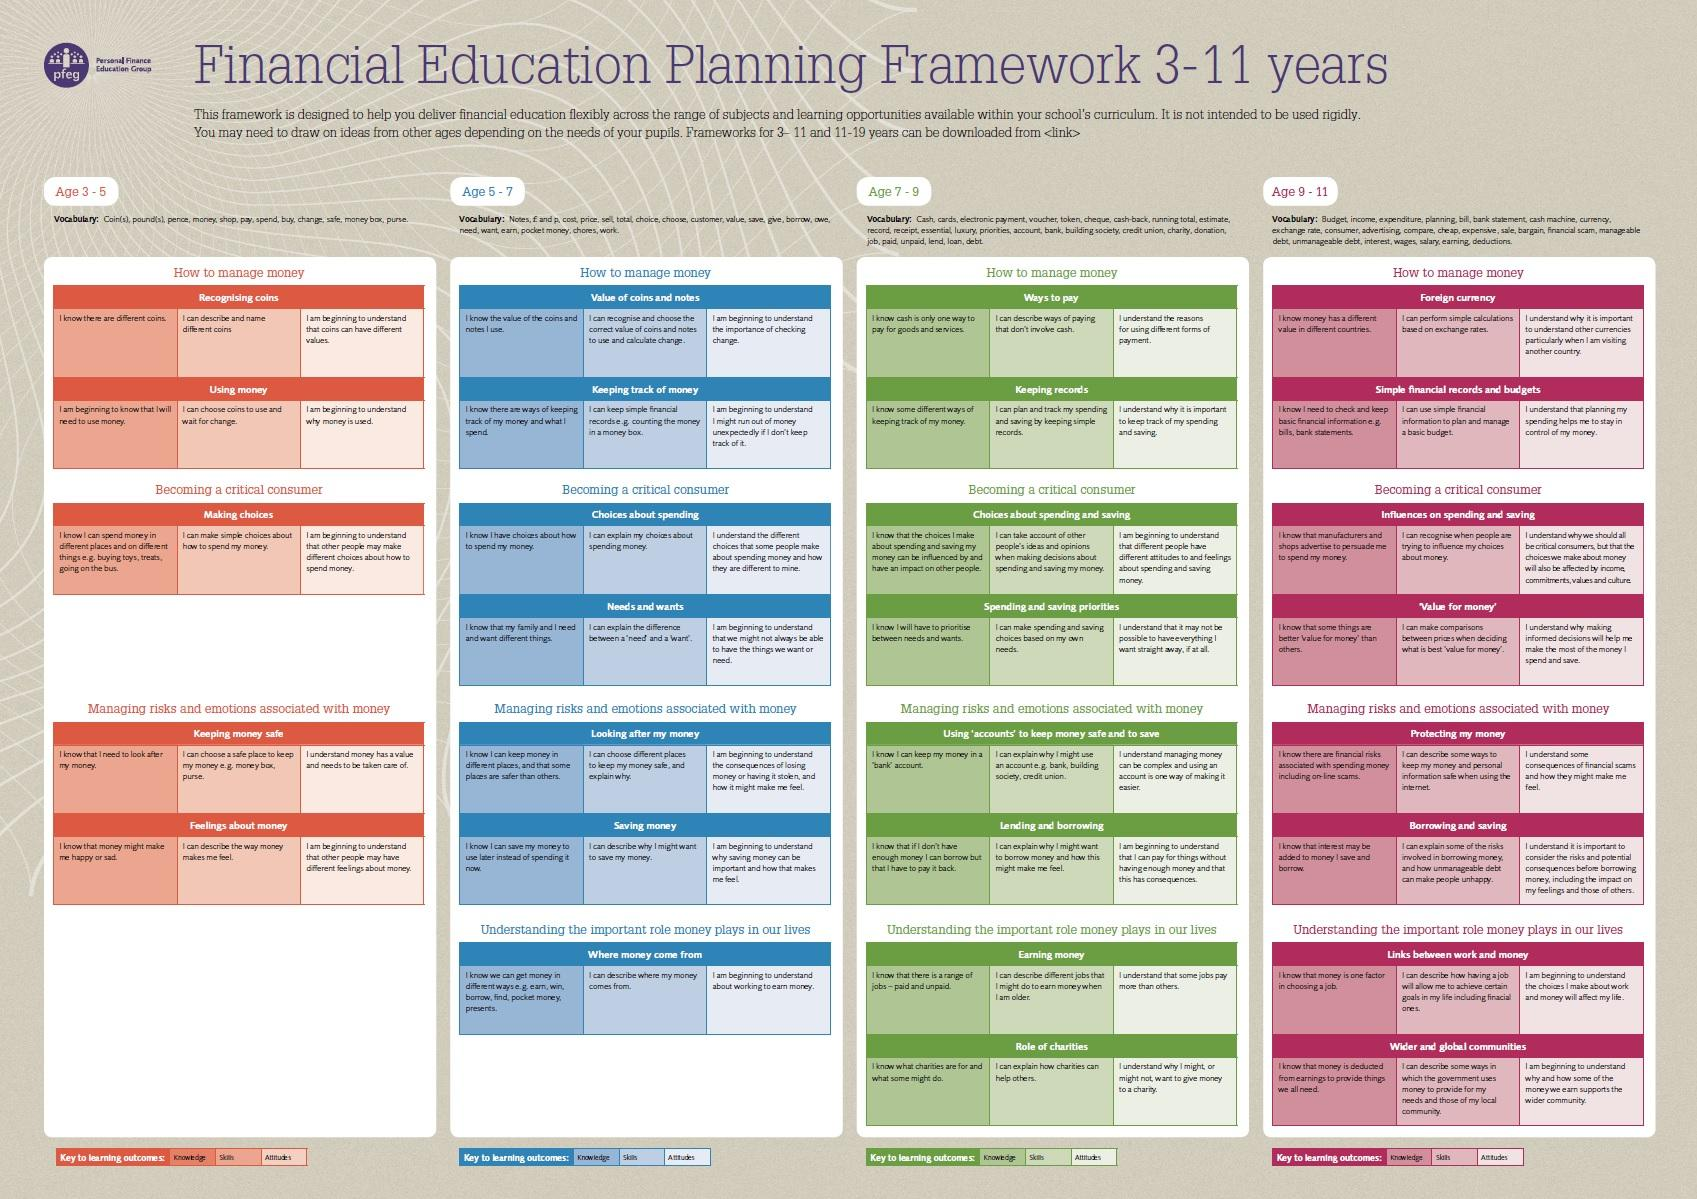 Planning framework in A2 poster form